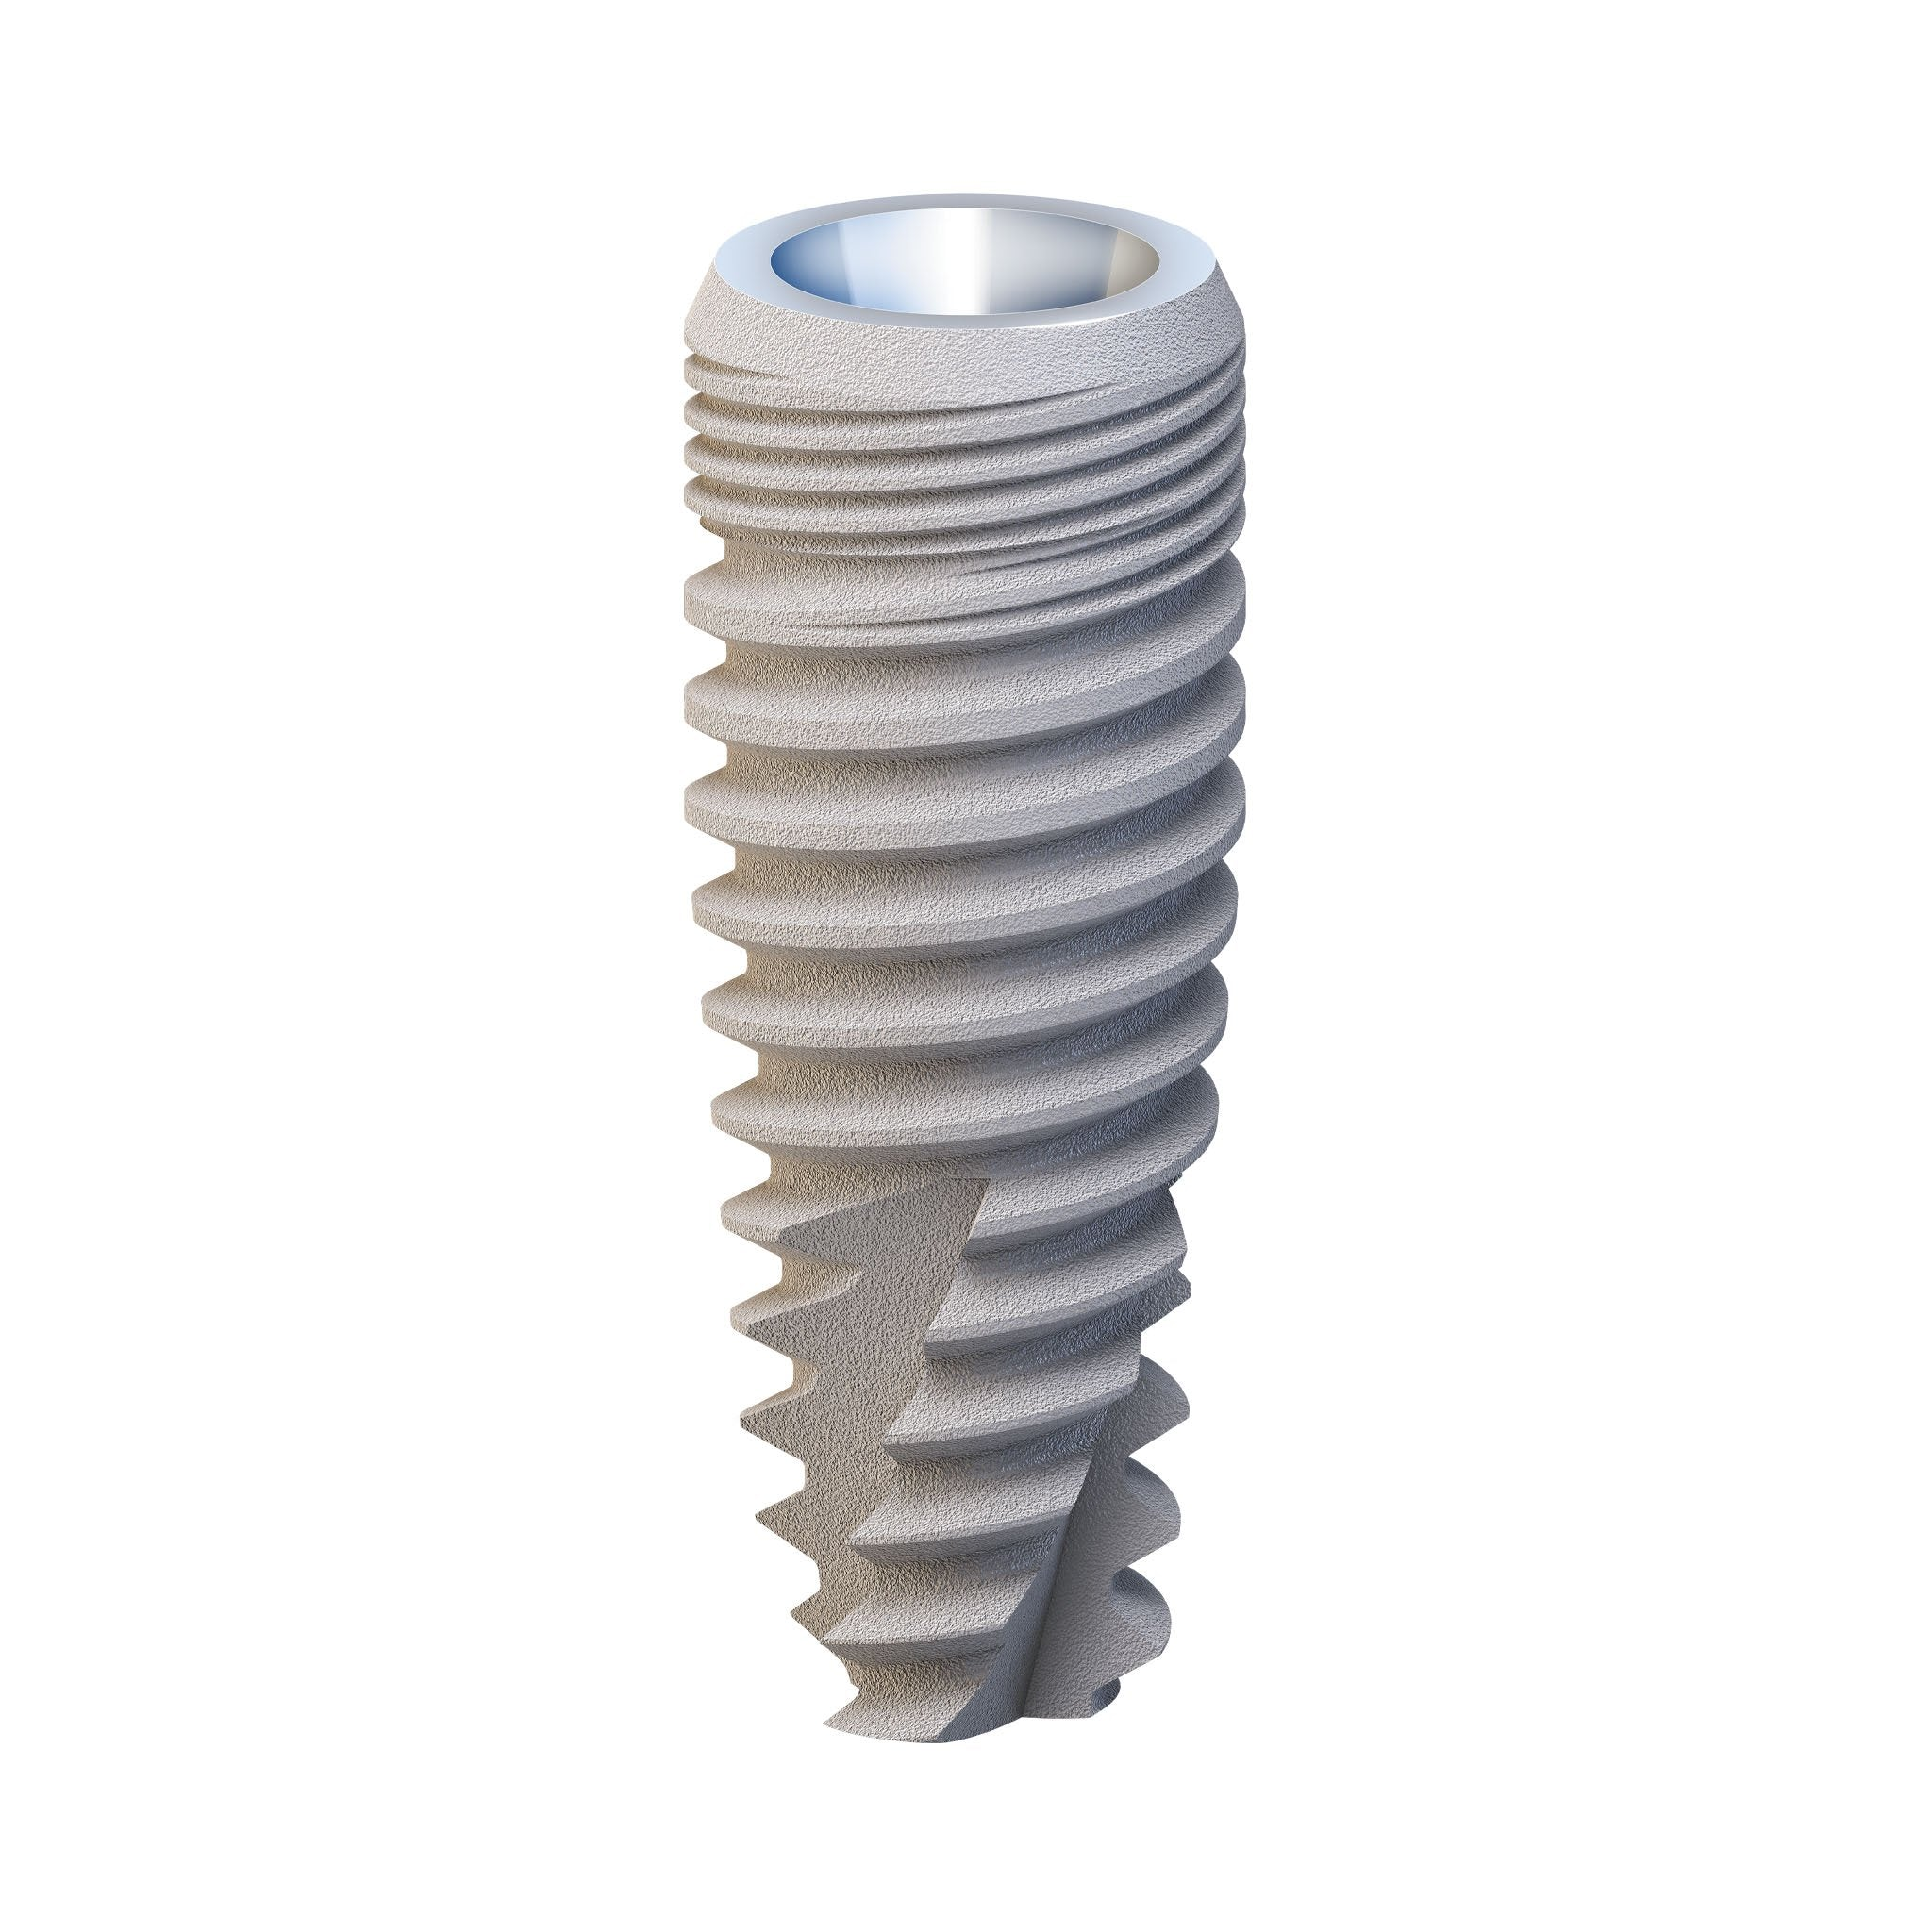 Conical Active Implant Ø 3.75 x 16mm | K3